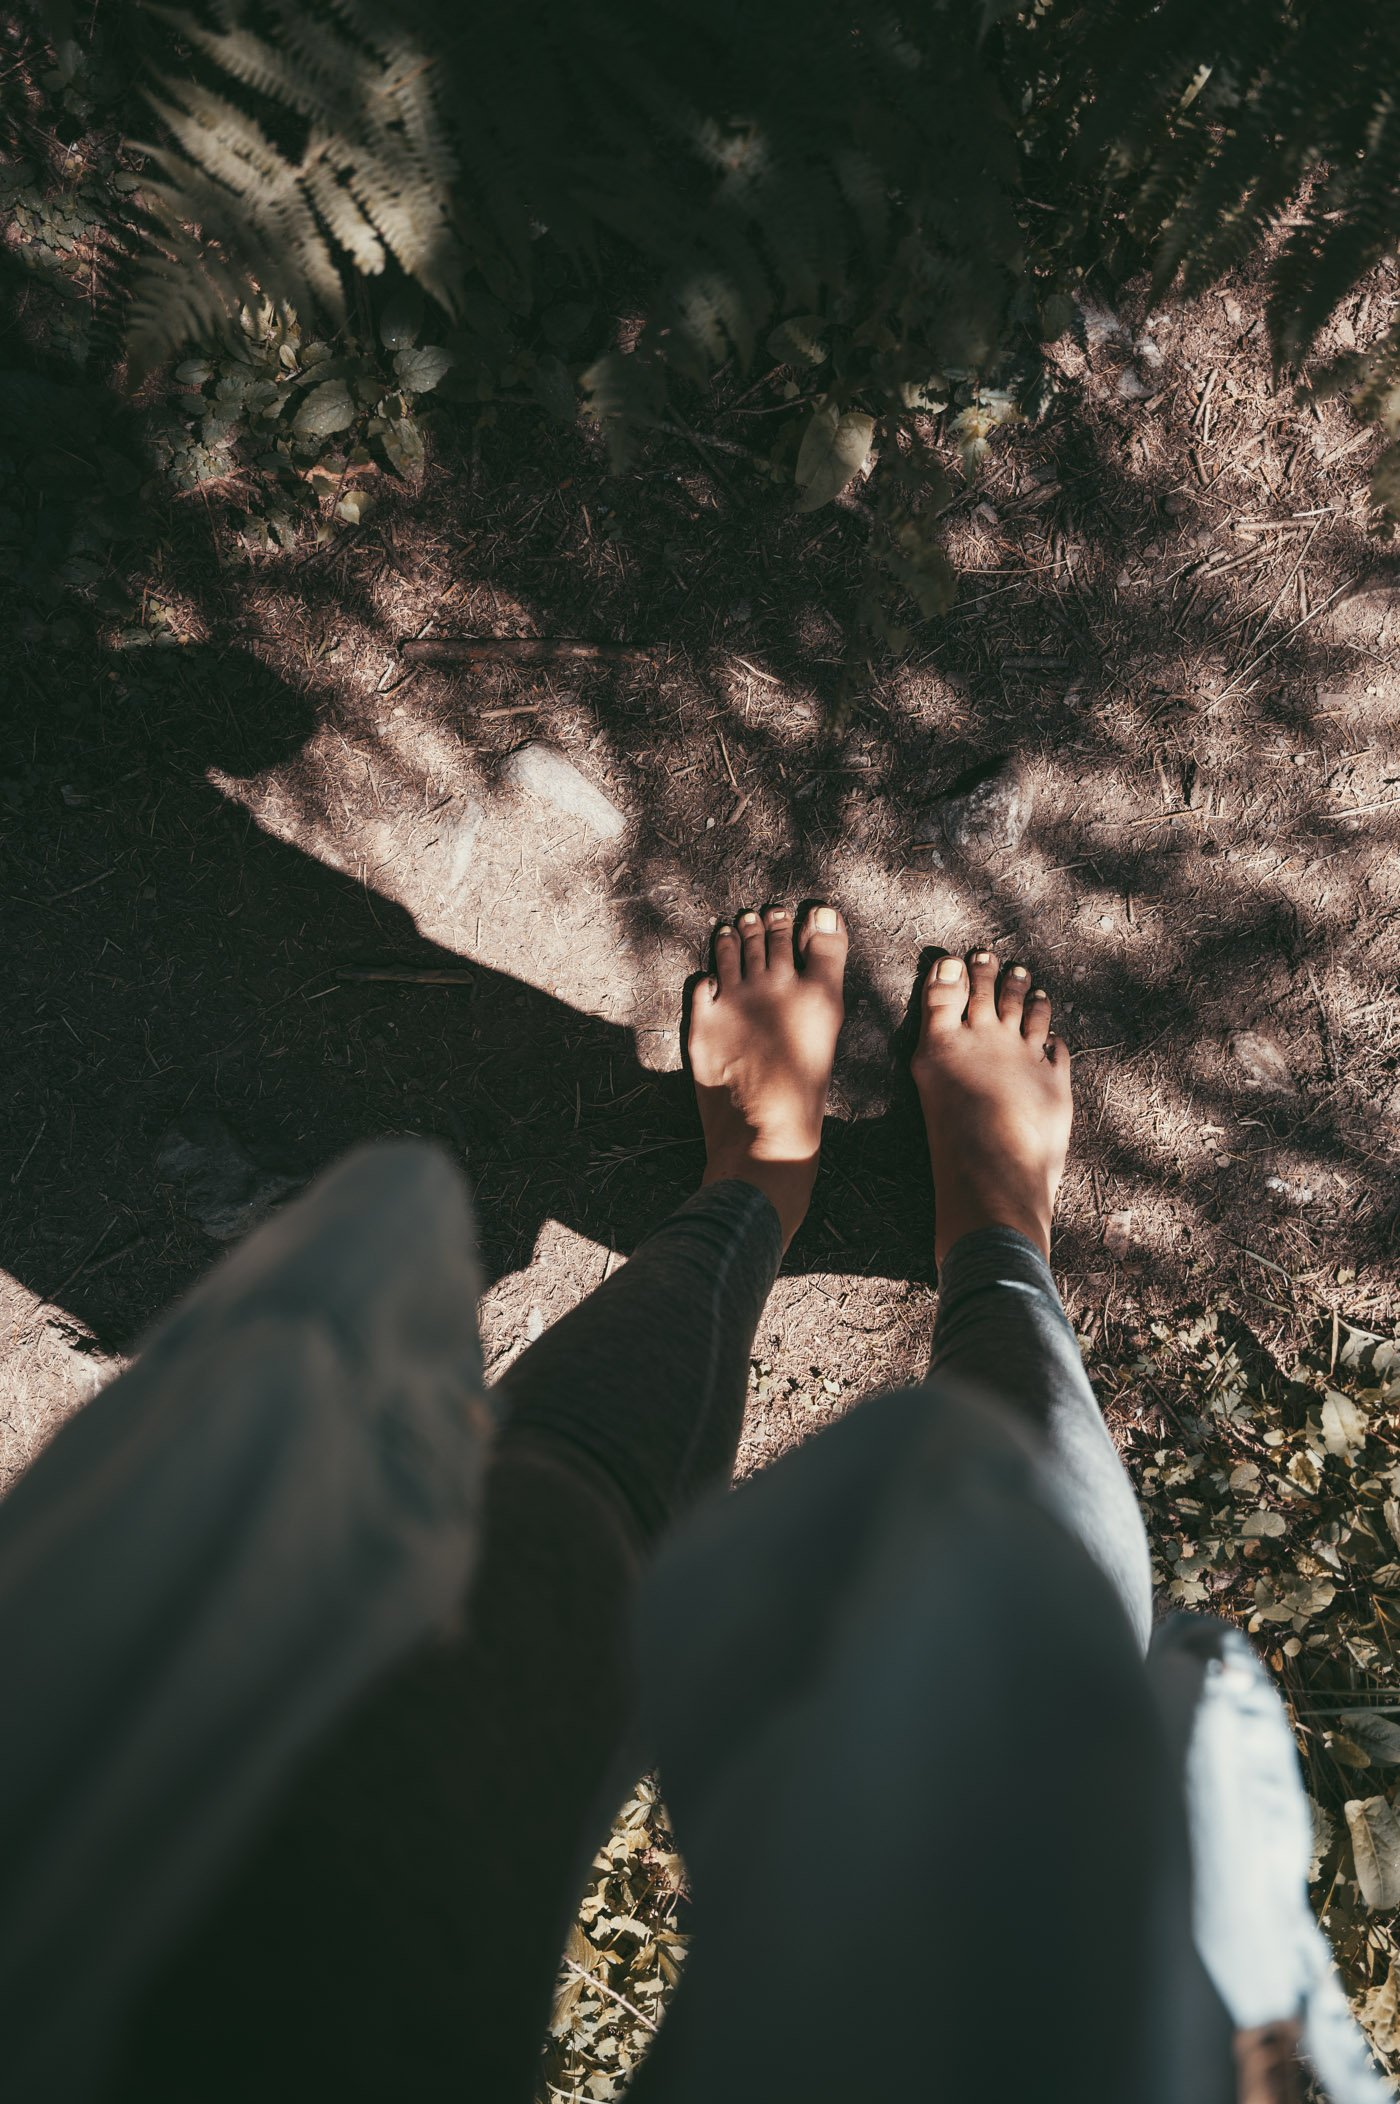 Barefoot hiking in East Tyrol - part of mindful mountain experiences